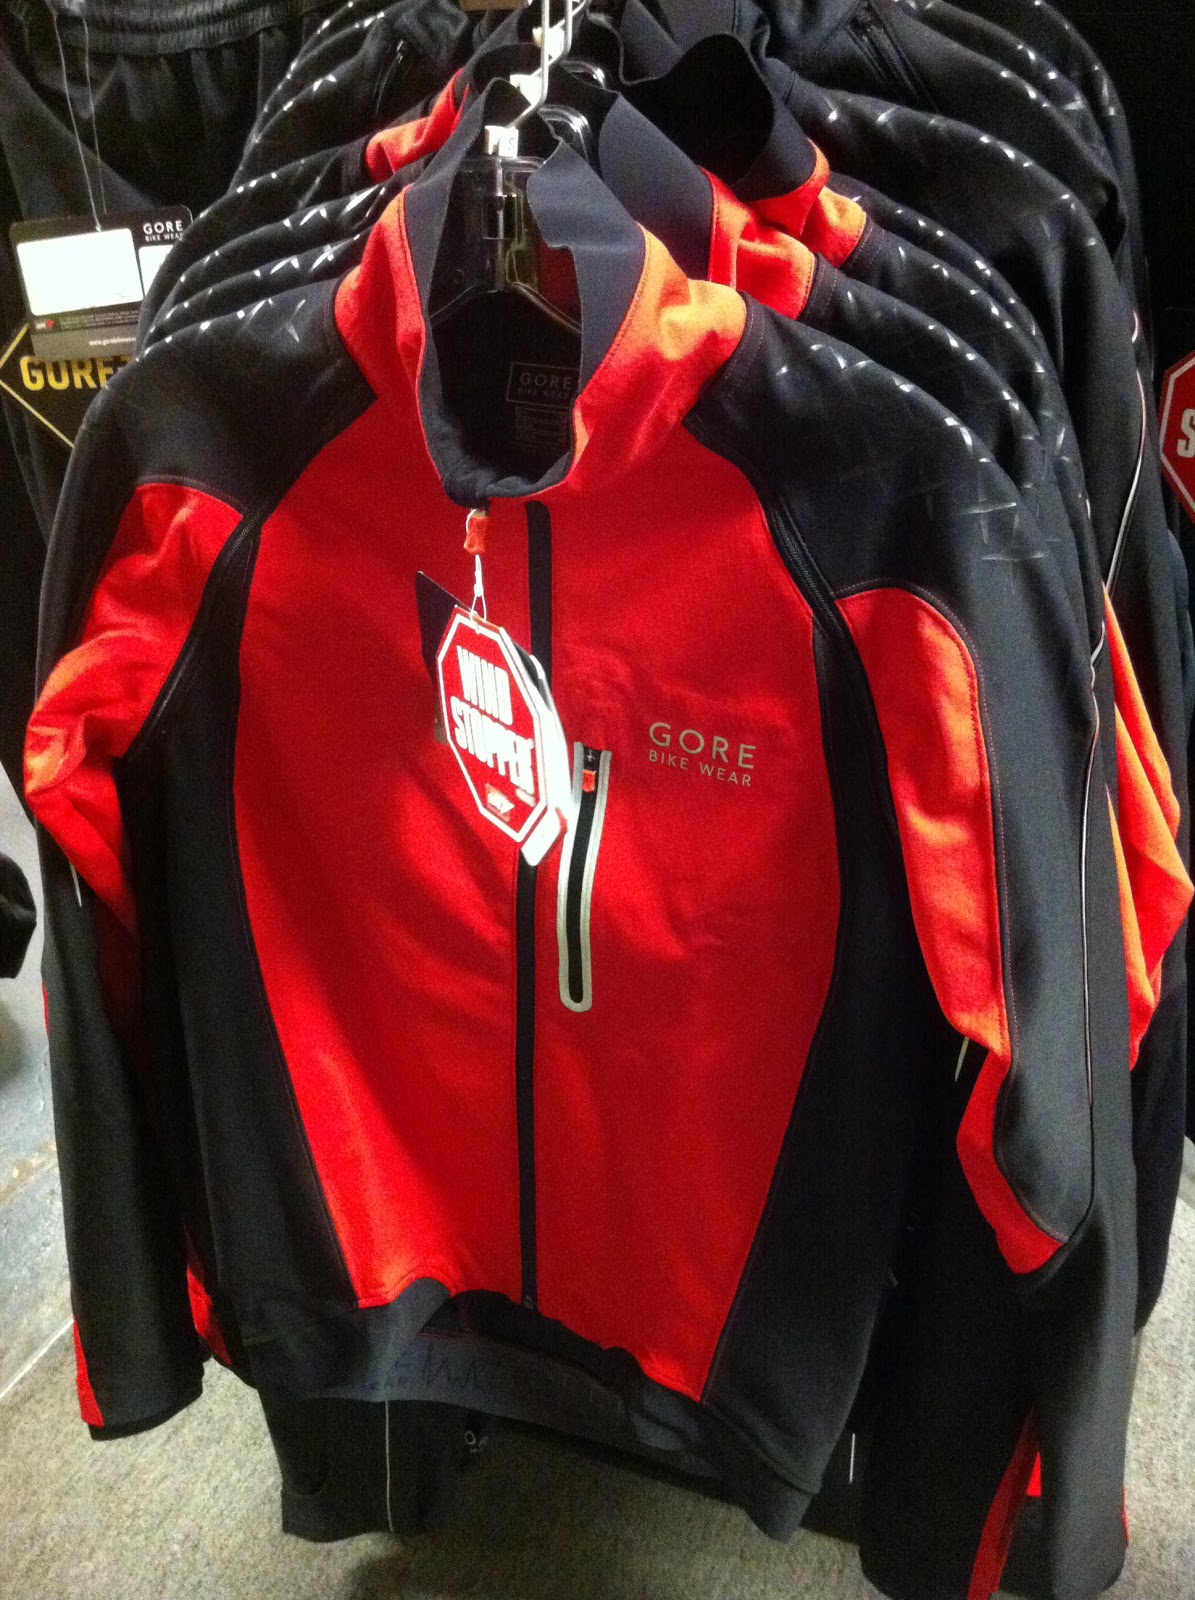 Village Cycle Center  GORE Bike Wear Fall Winter Apparel Has Arrived ... 72968e257